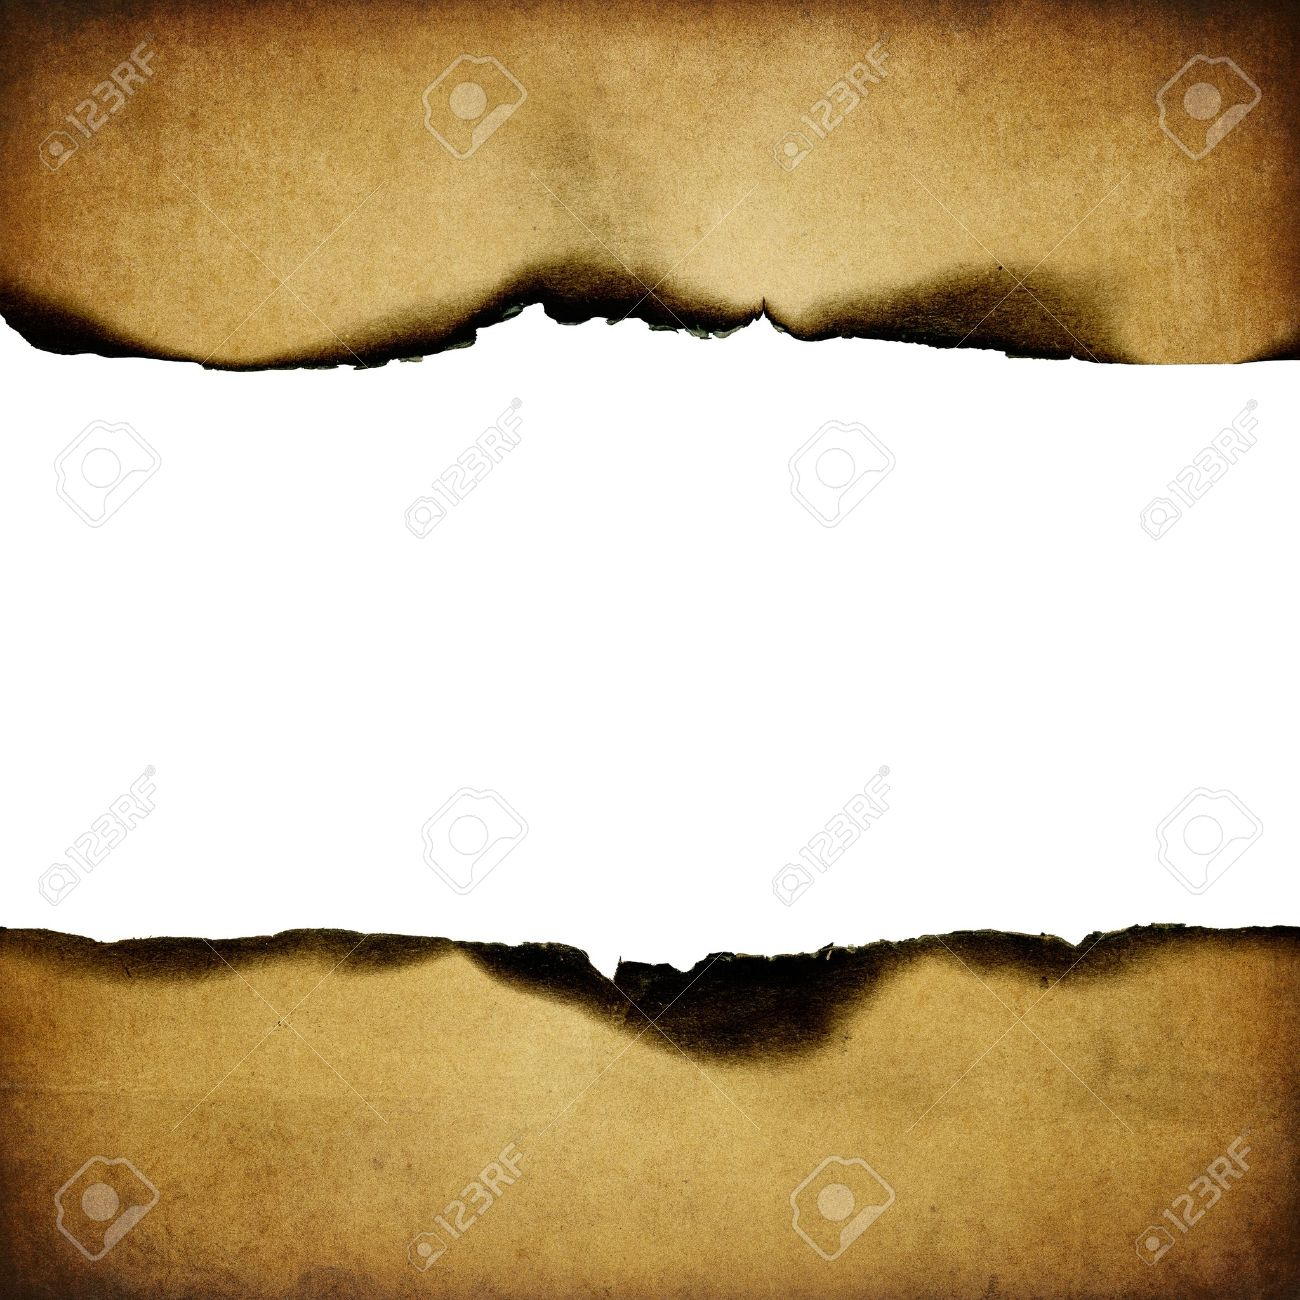 Vintage burned paper background, centerline isolated (space for text). Stock Photo - 7601784